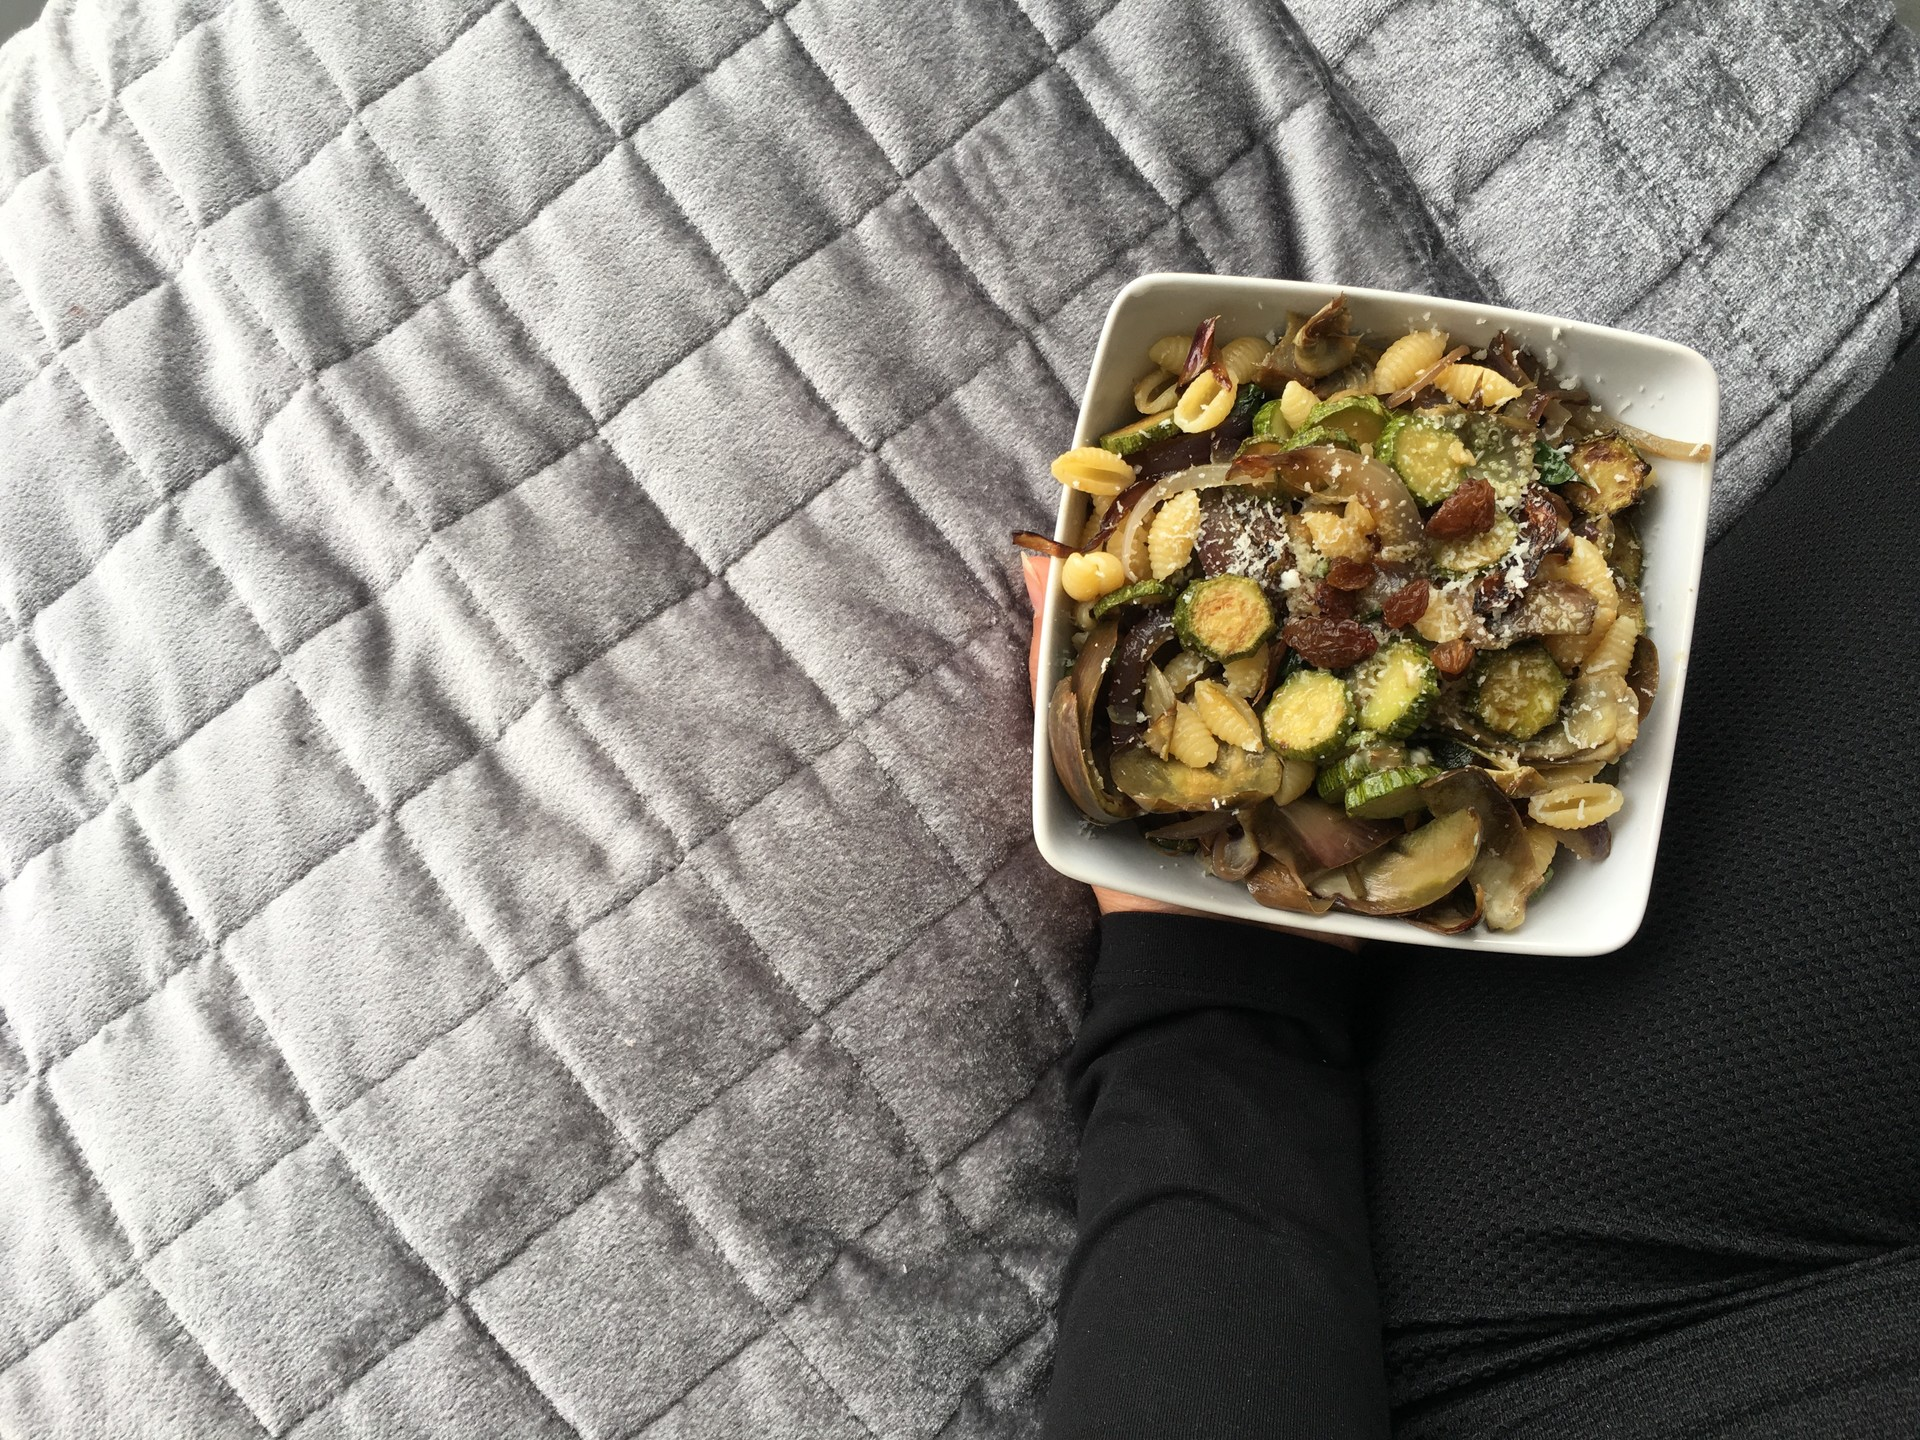 Pasta with artichokes and courgettes erasmus recipes pasta with artichokes and courgettes forumfinder Choice Image